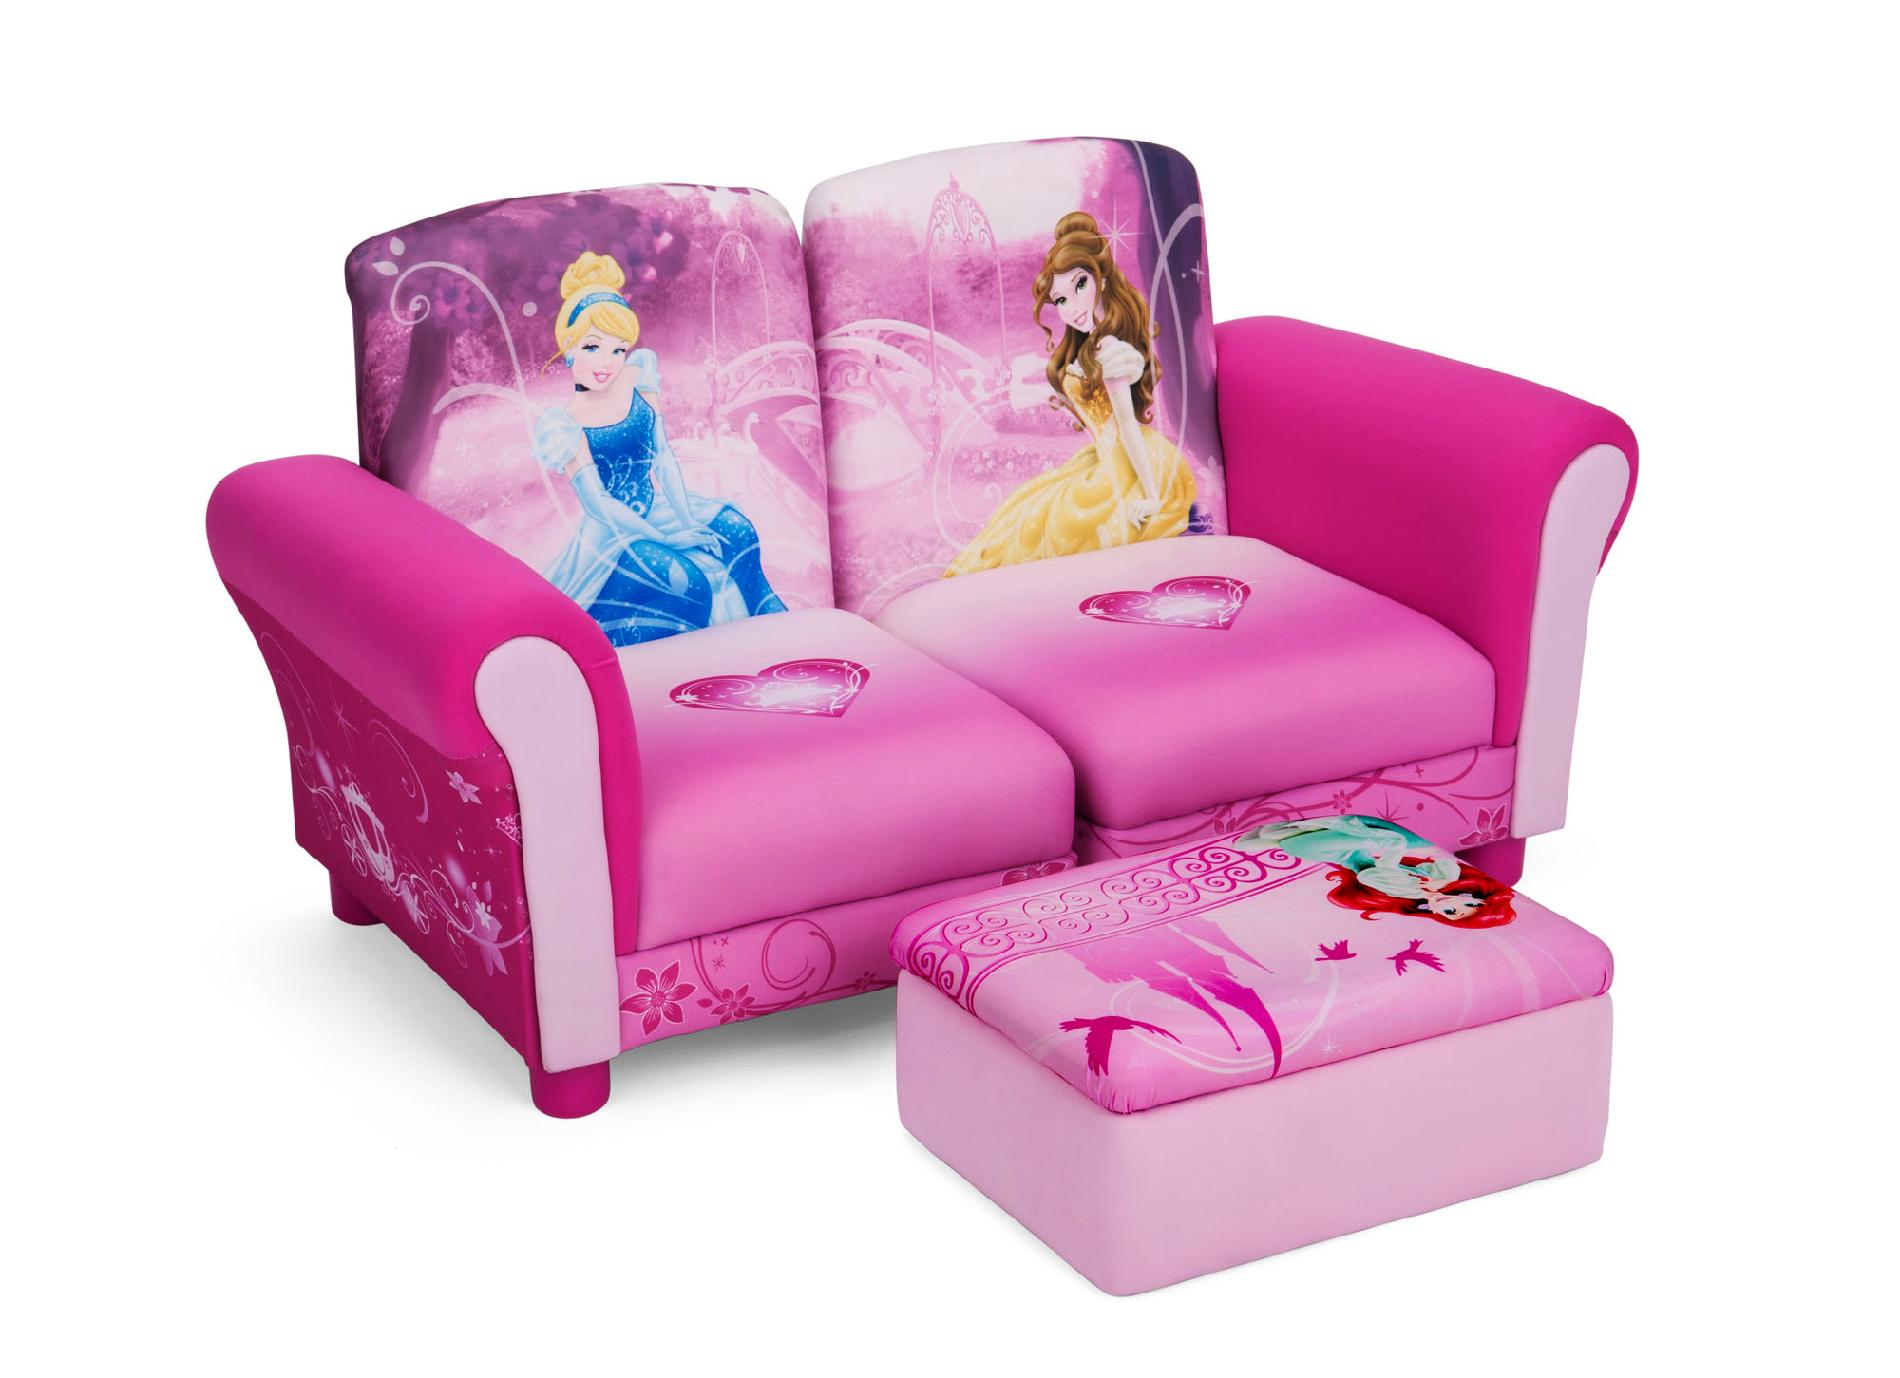 Princess Chairs For Toddlers Delta Children Disney Princess 3 Pc Upholstered